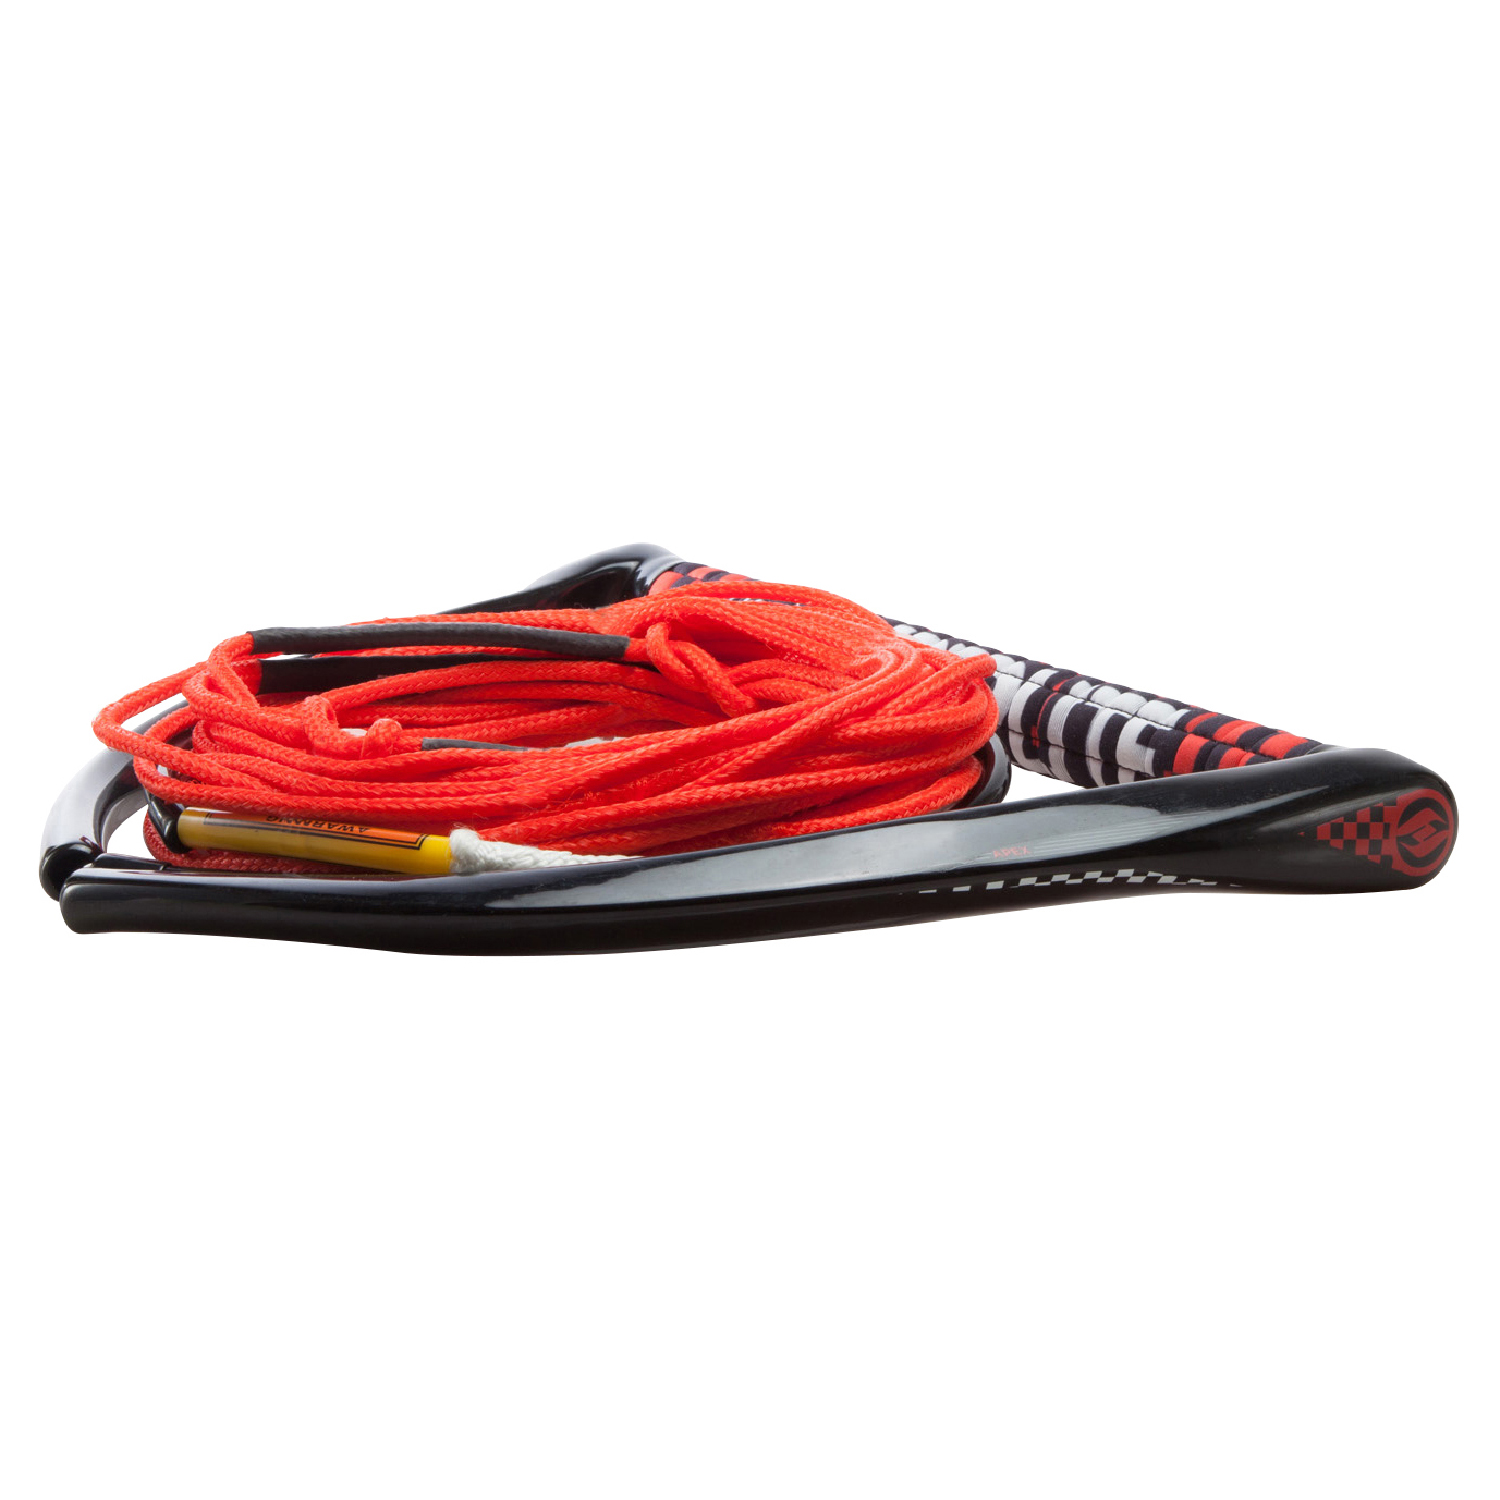 Hyperlite 2018 Chamois w  Fuse Line (Red) Wakeboard Rope & Handle Combo by